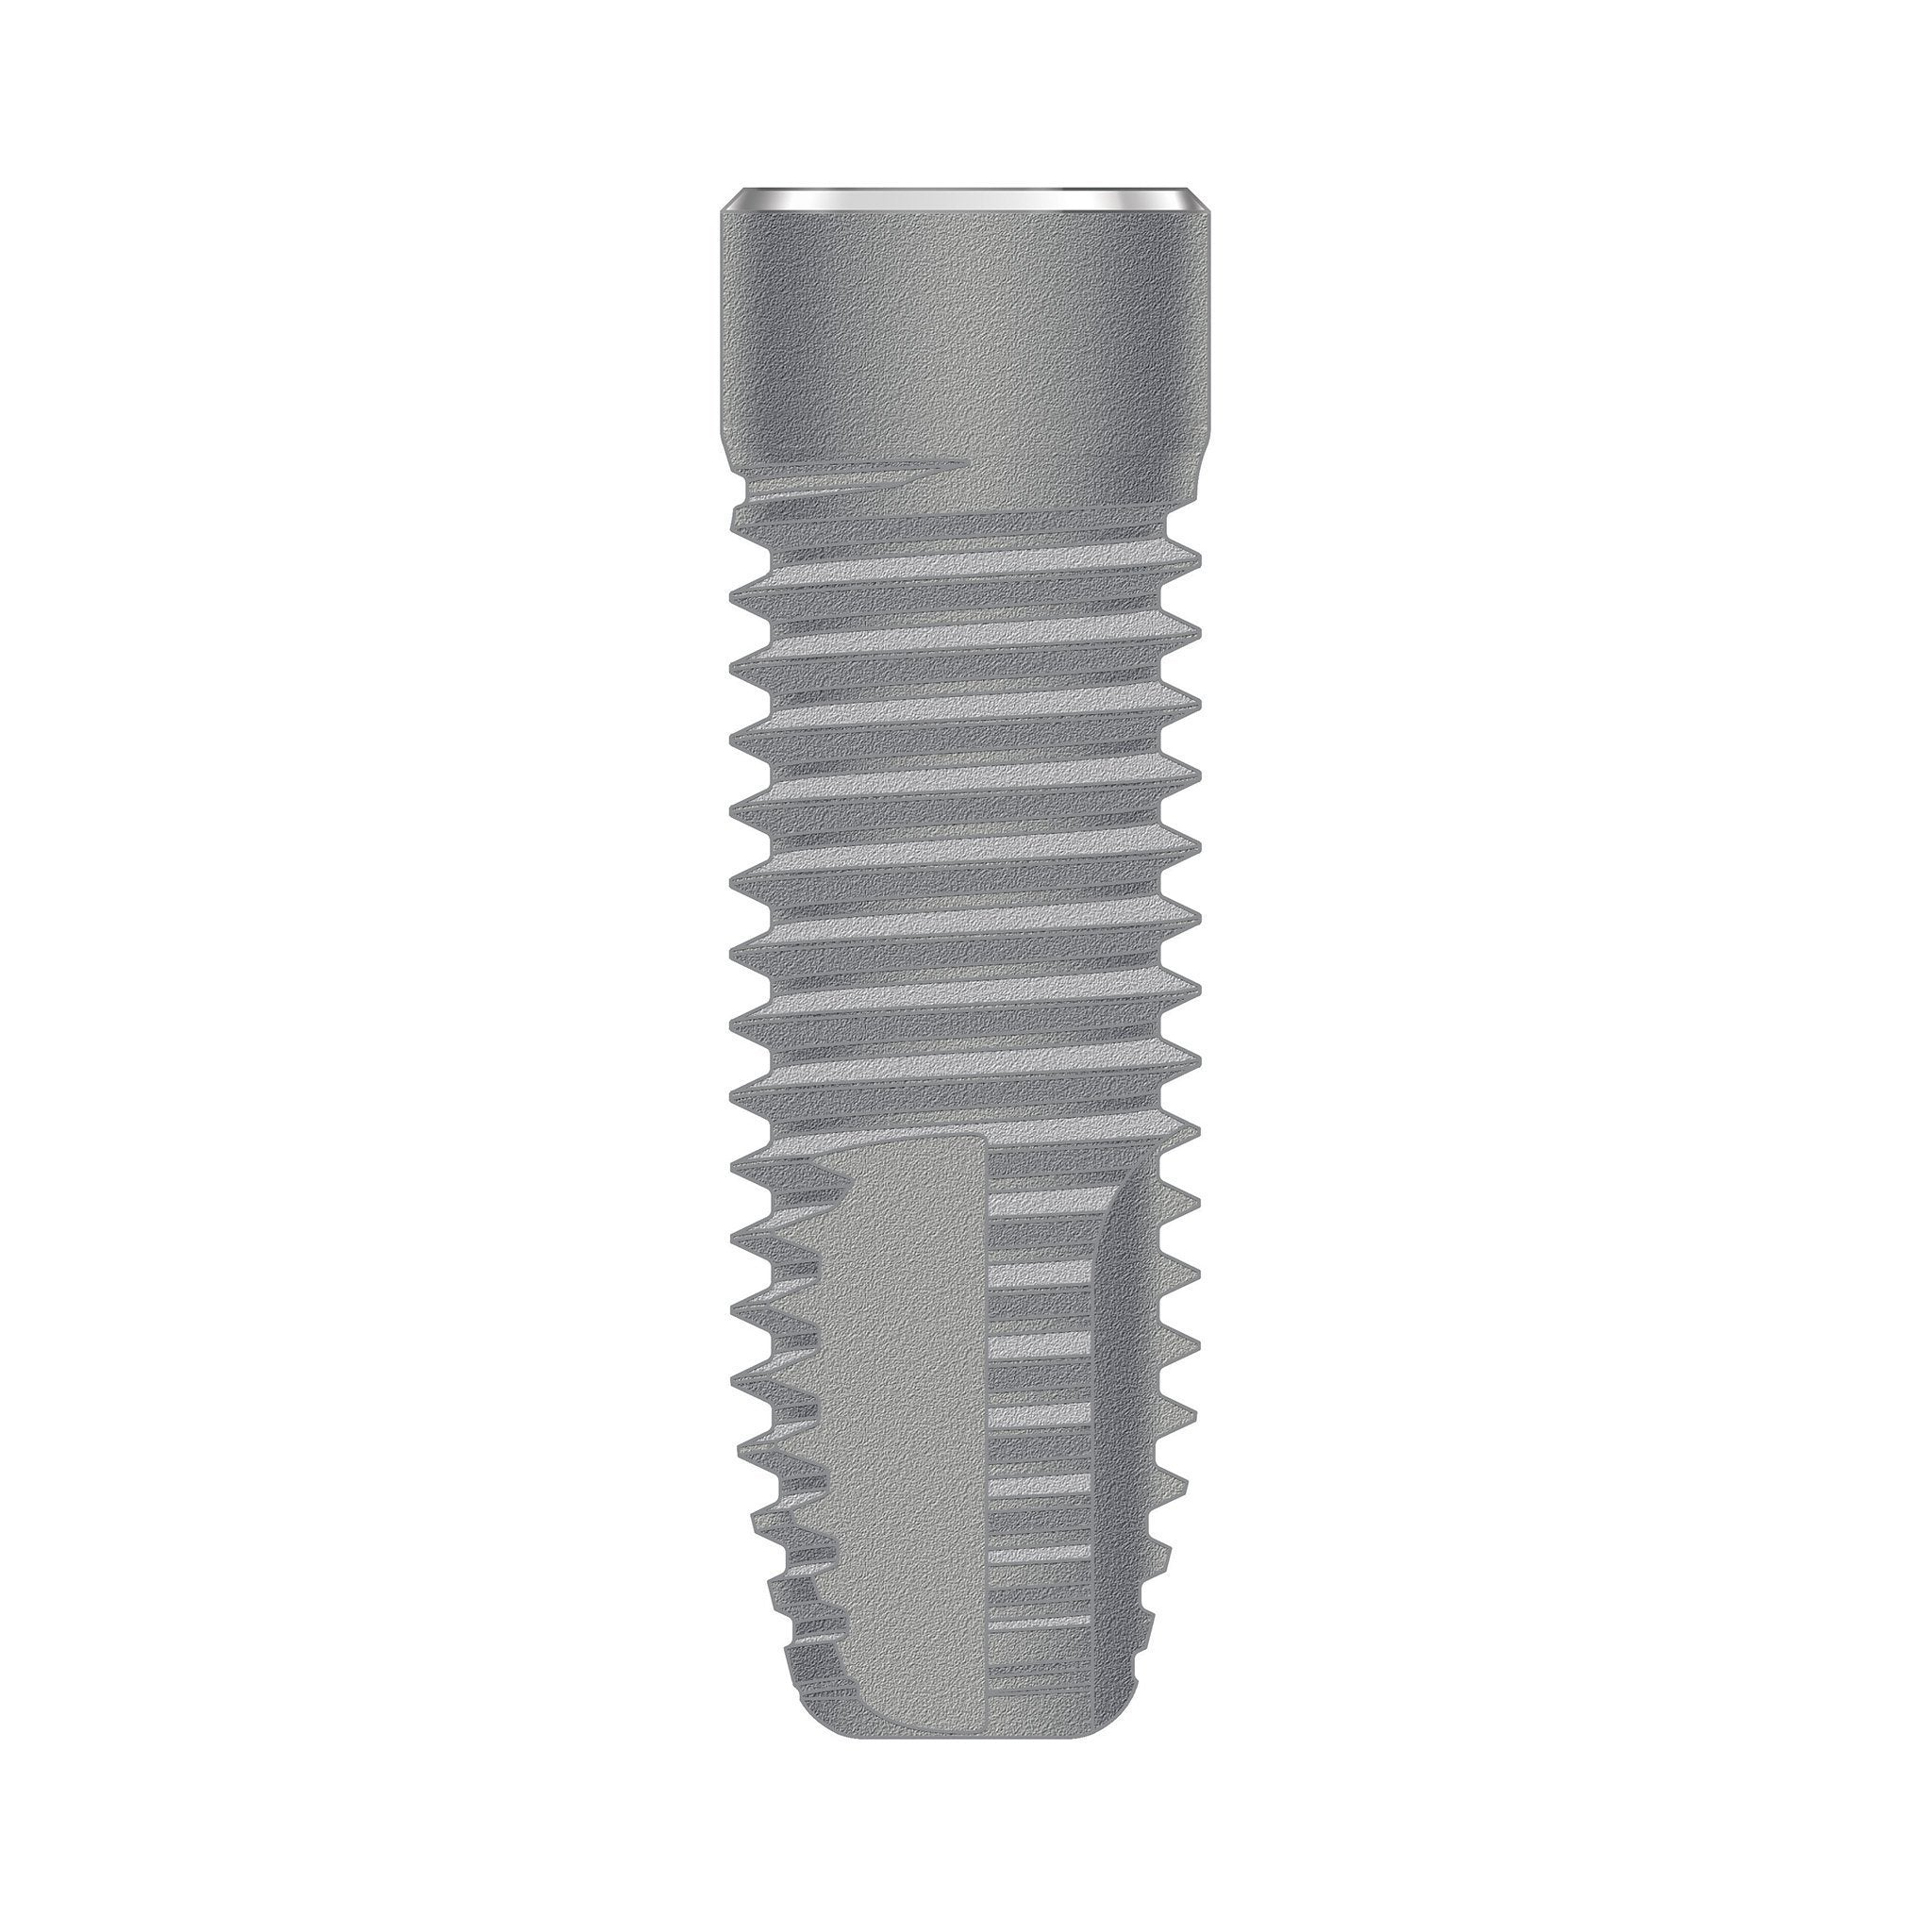 PrimaConnex® TC Straight Implant WD Ø 5.0 x 10mm | K3